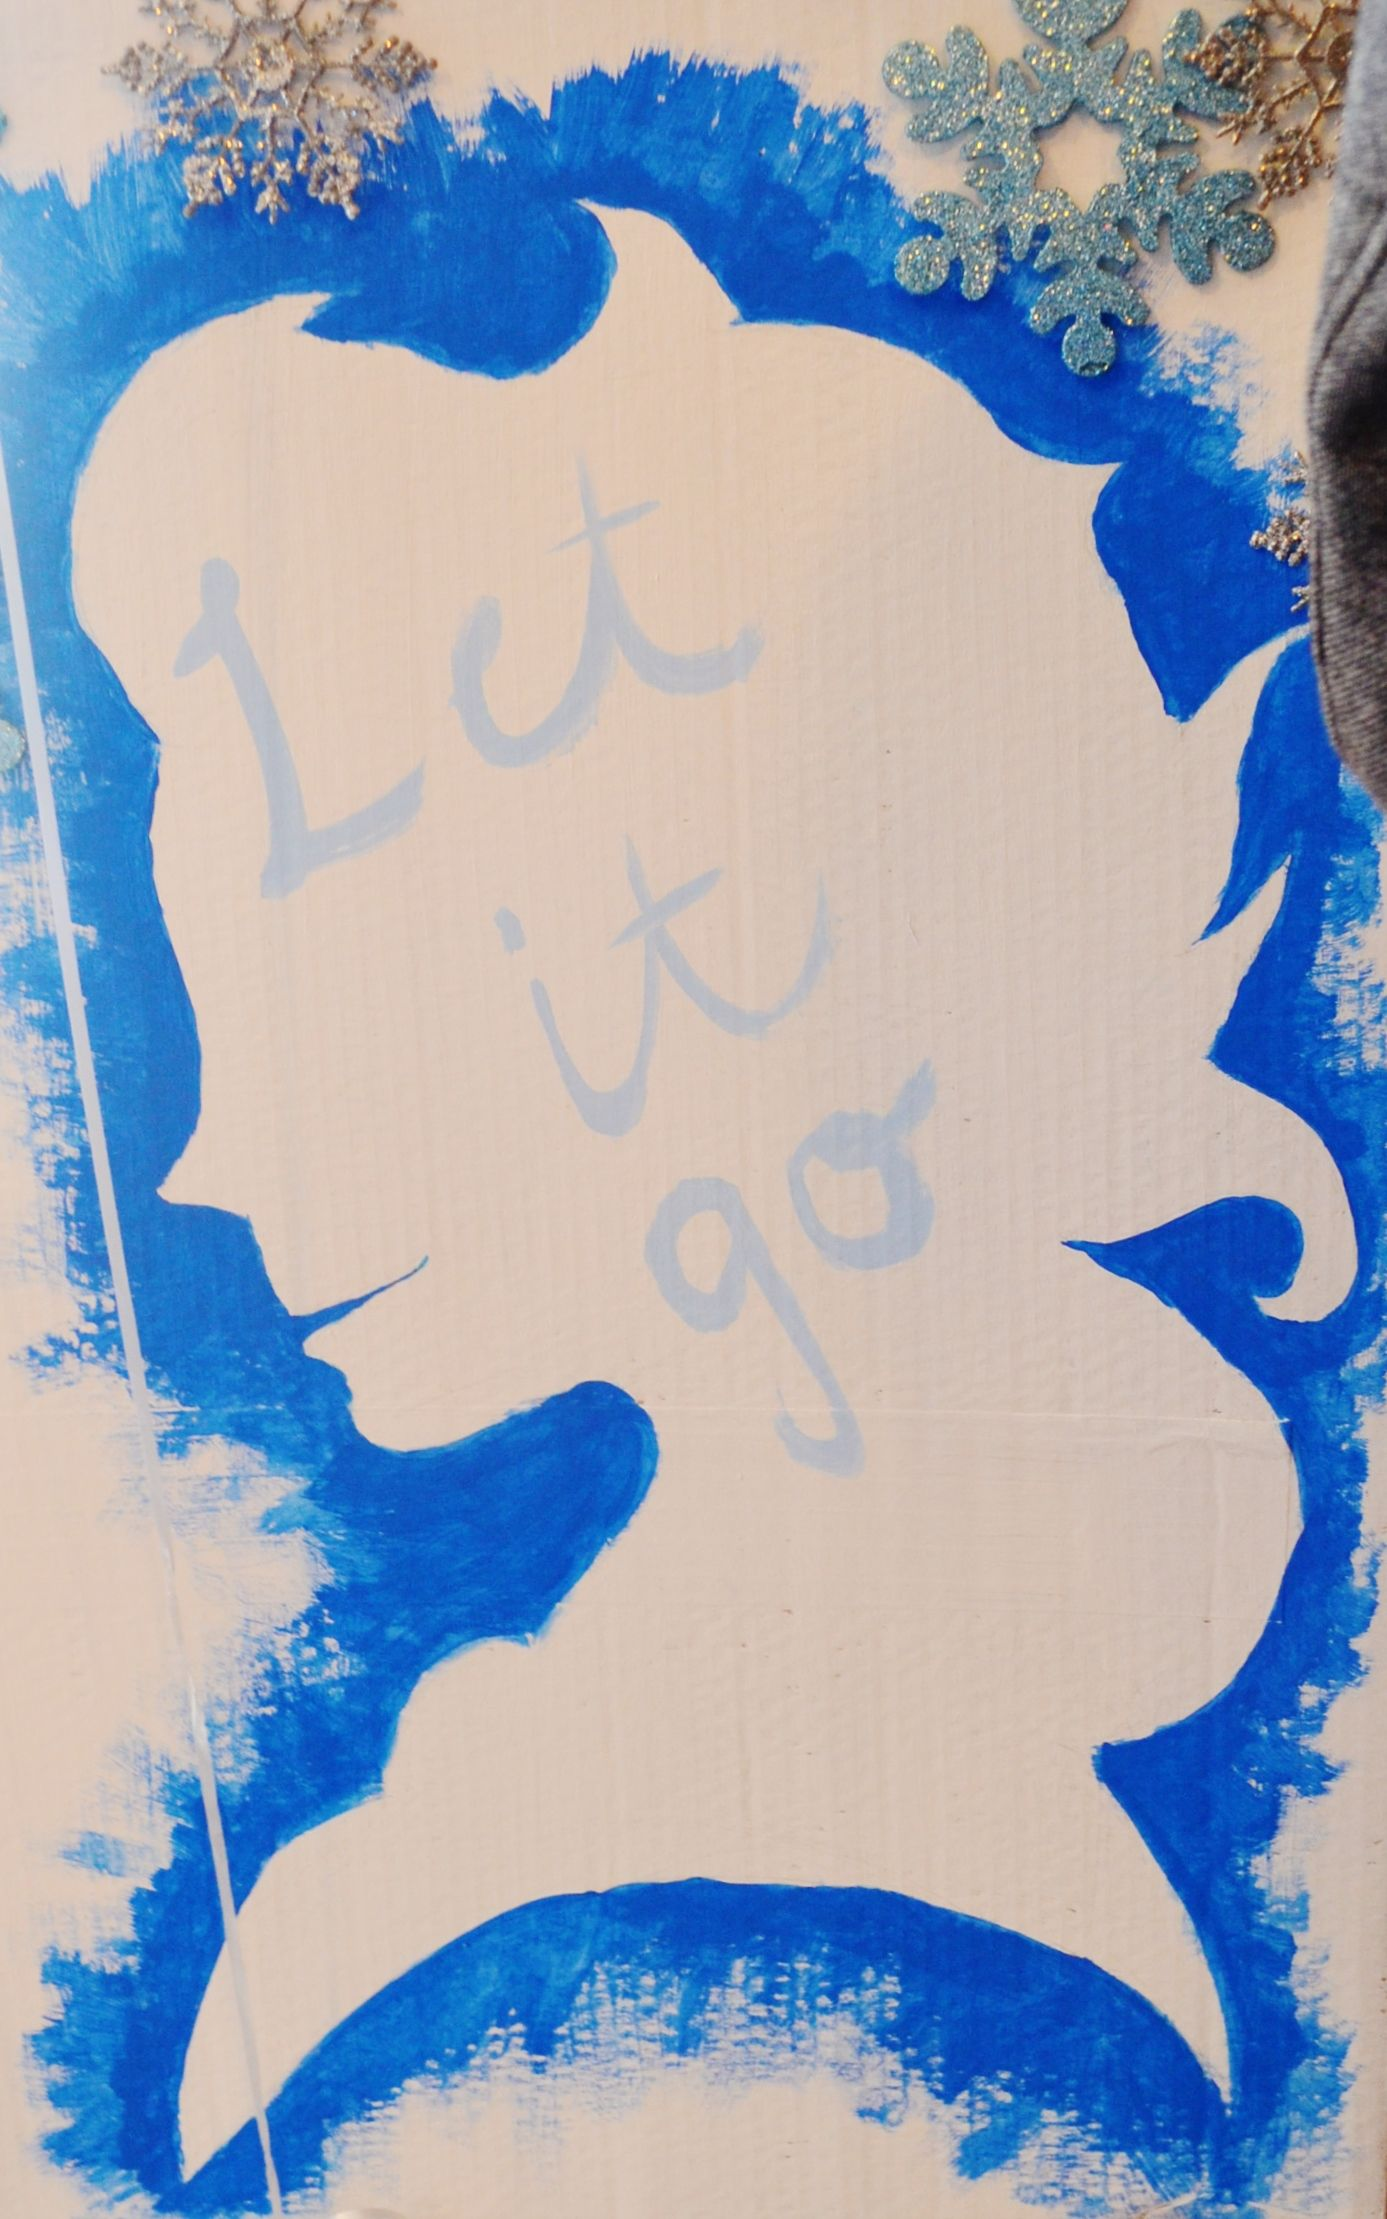 Frozen Elsa Outline diy acrylic paint sign-perfect for any Frozen Themed Event - Let It Go https://frankietotheskies.wordpress.com/portfolio/frozen/